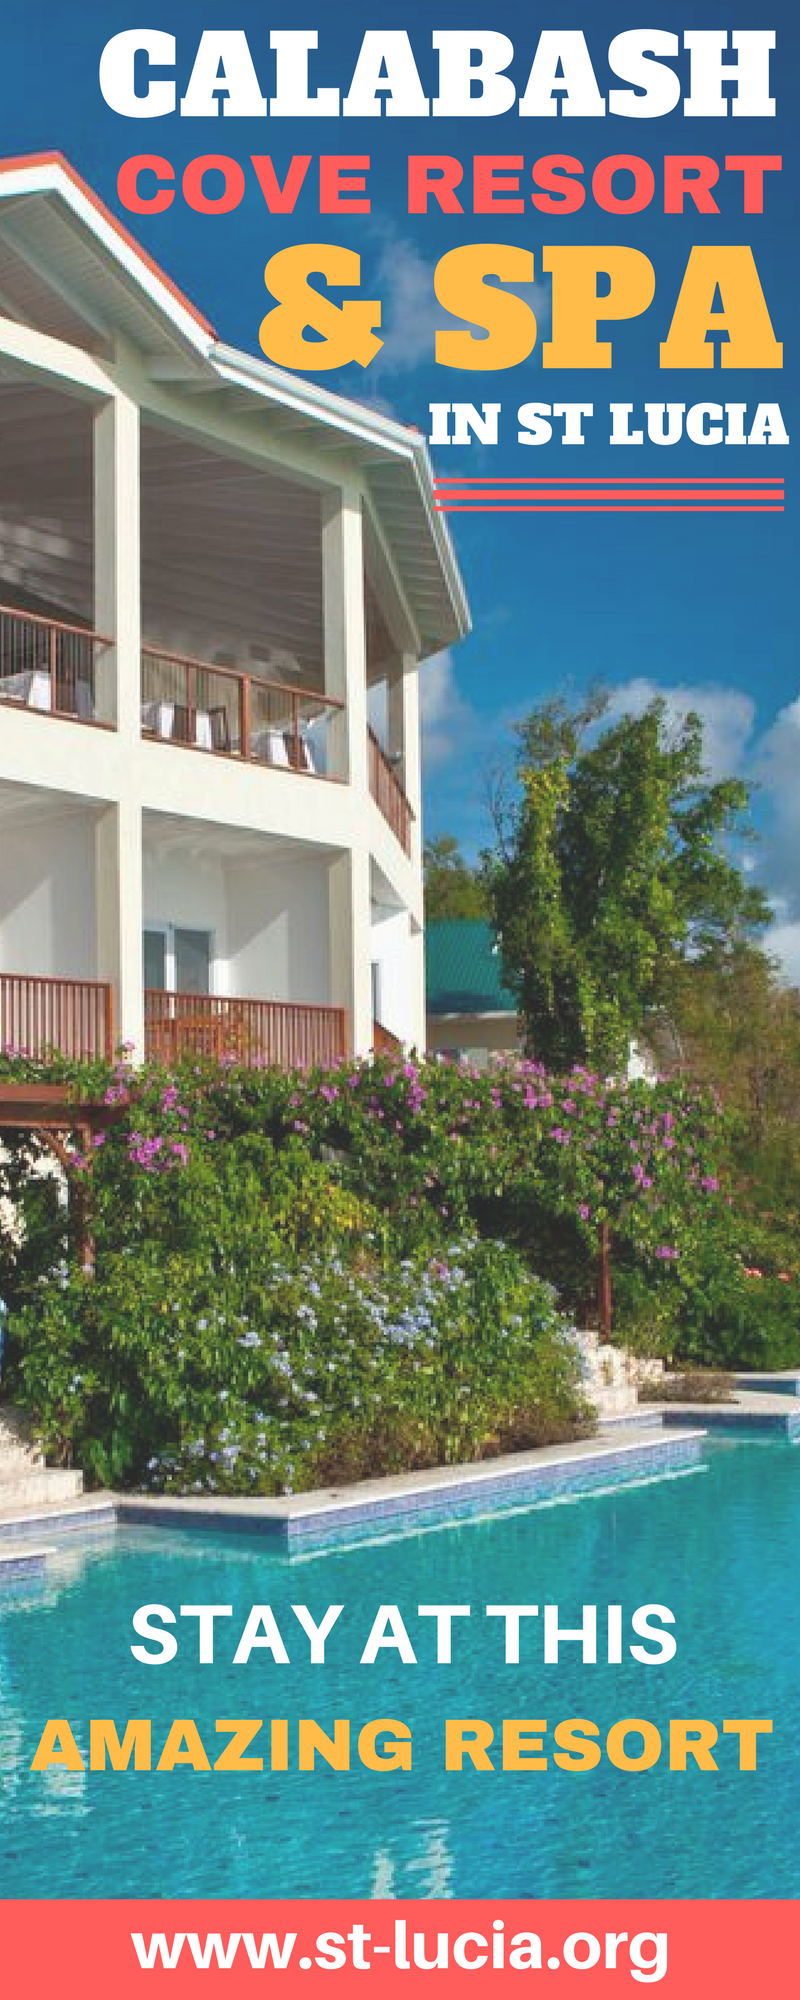 Calabash Cove Resort in St. Lucia. All inclusive resorts in St Lucia. Calabash Cove Resort and Spa Hotel in St. Lucia- Adults Only Resort. All inclusive resorts in St Lucia, Places to stay in St Lucia. Adult only resorts in St Lucia. Calabash Cove Situated on the coast of St. Lucia in Marisule, this open-air resort boasts a Sweetwater pool with infinity edge. Calabash cove spa in St Lucia. Places to stay in St Lucia. All inclusive couples resort in st lucia. #stlucia #stluciaresorts